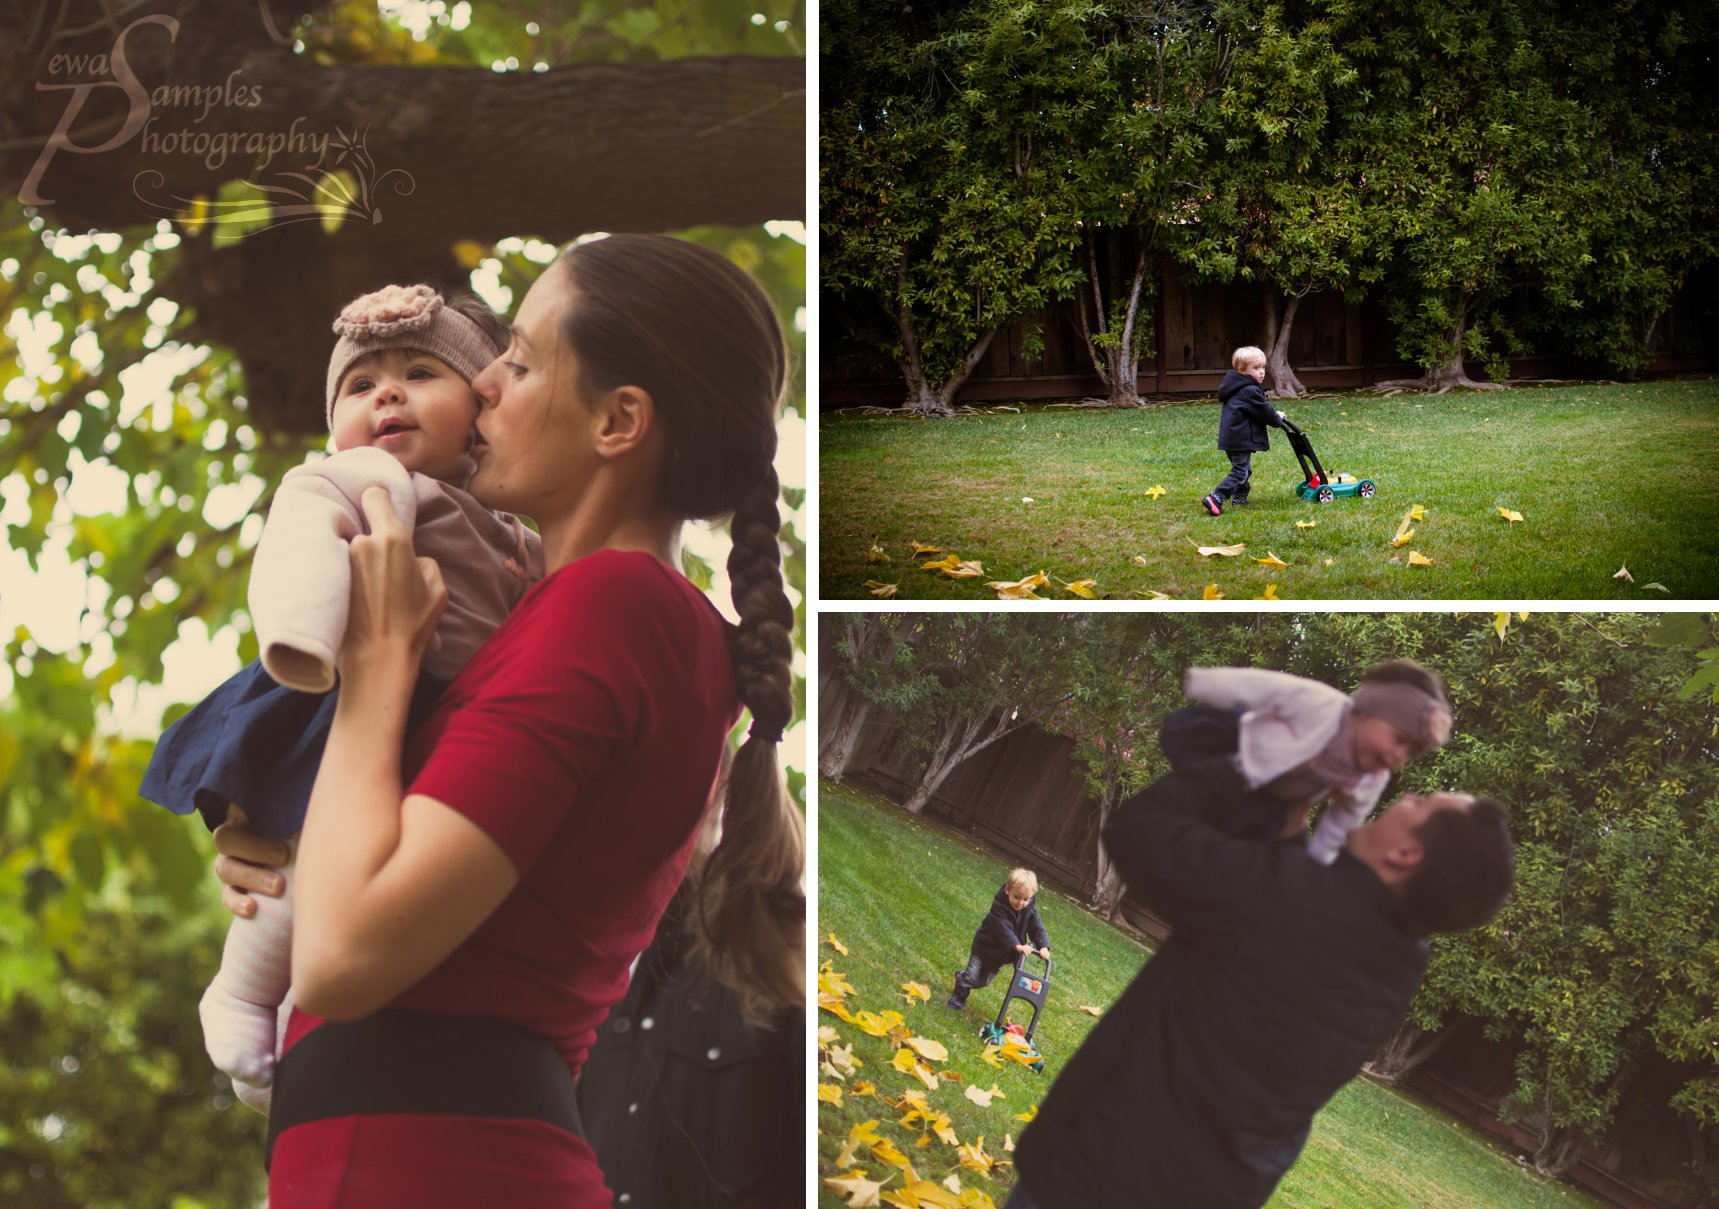 ewa samples, family session, mountain view, CA,3